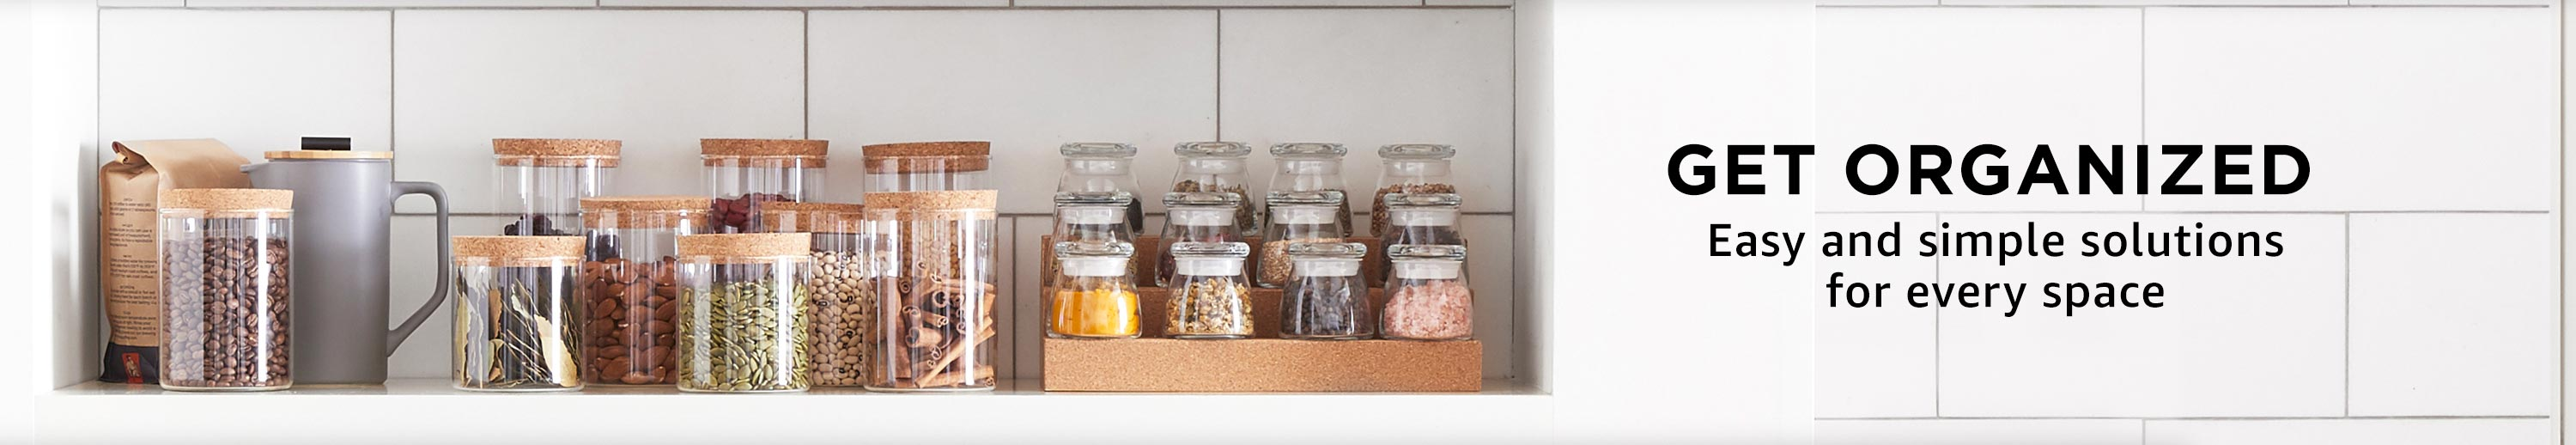 Get organized: easy and simple solutions for every space